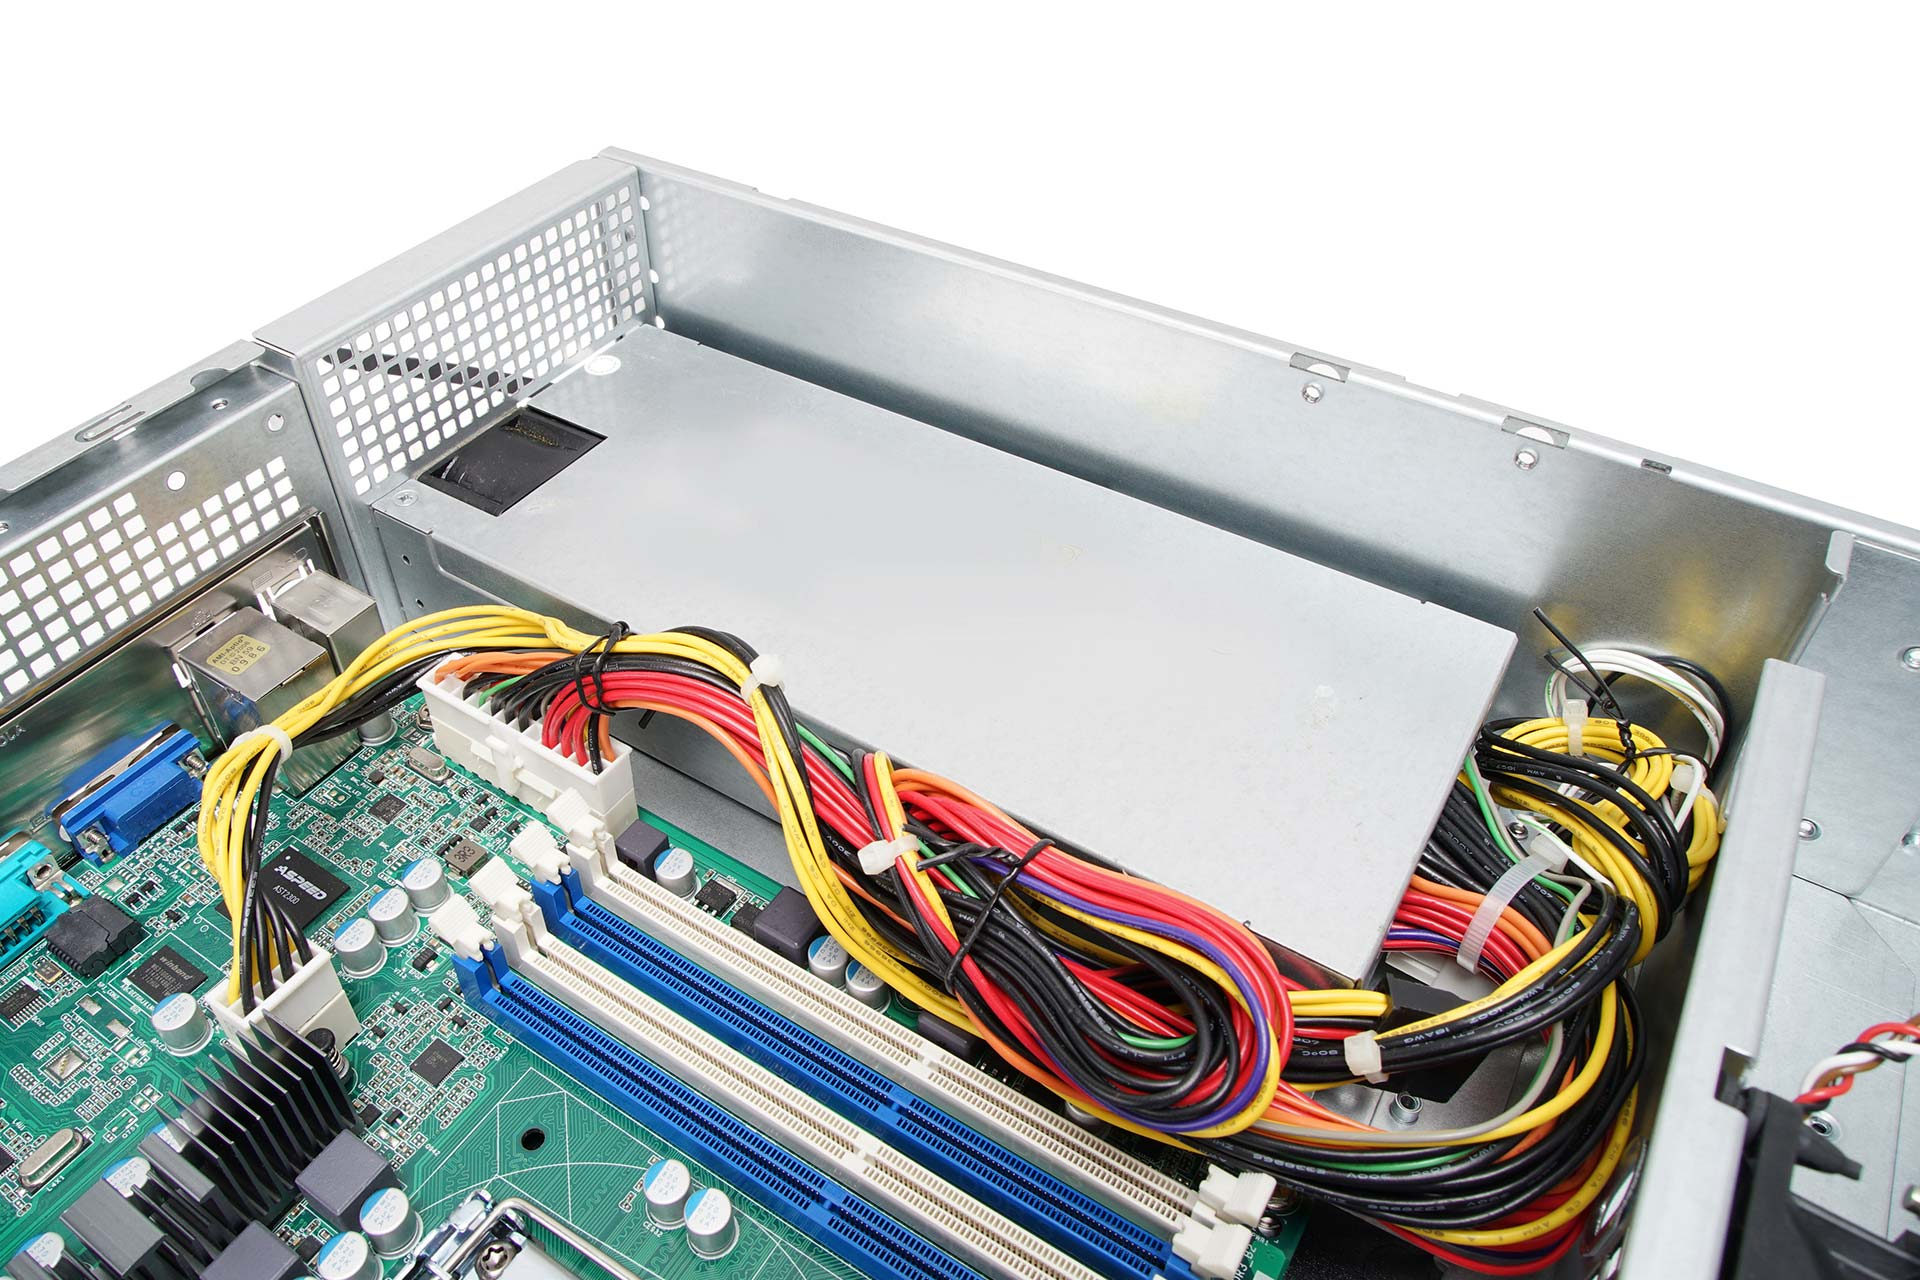 IW-RS208-02SN - server system assembly